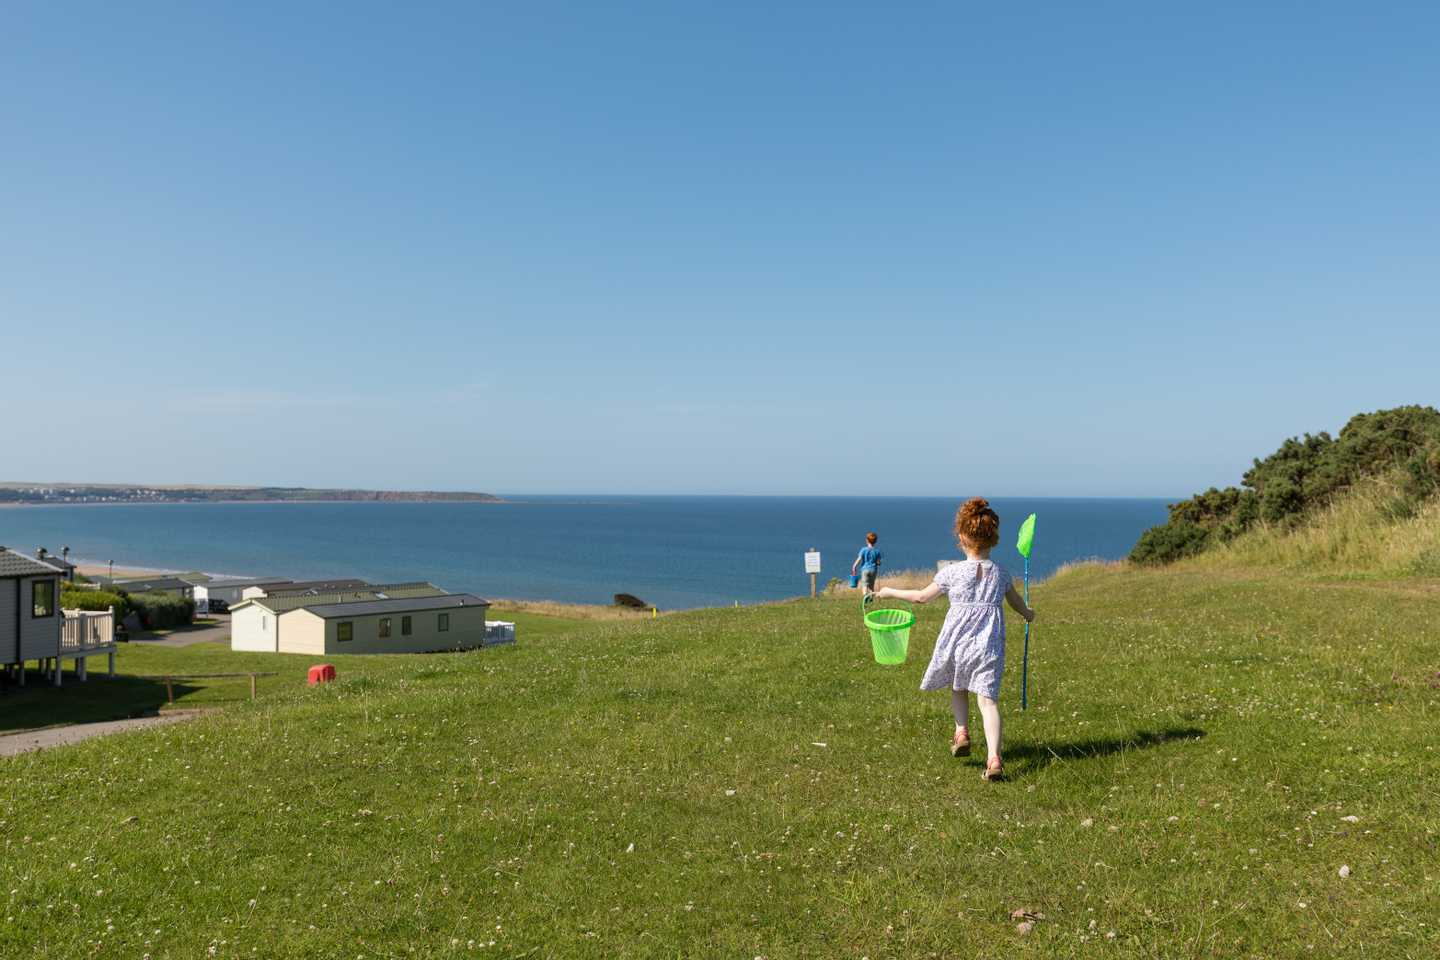 A little boy and girl walking along a hill with a bucket and spade as they make their way down to the beach on a day with clear blue skies